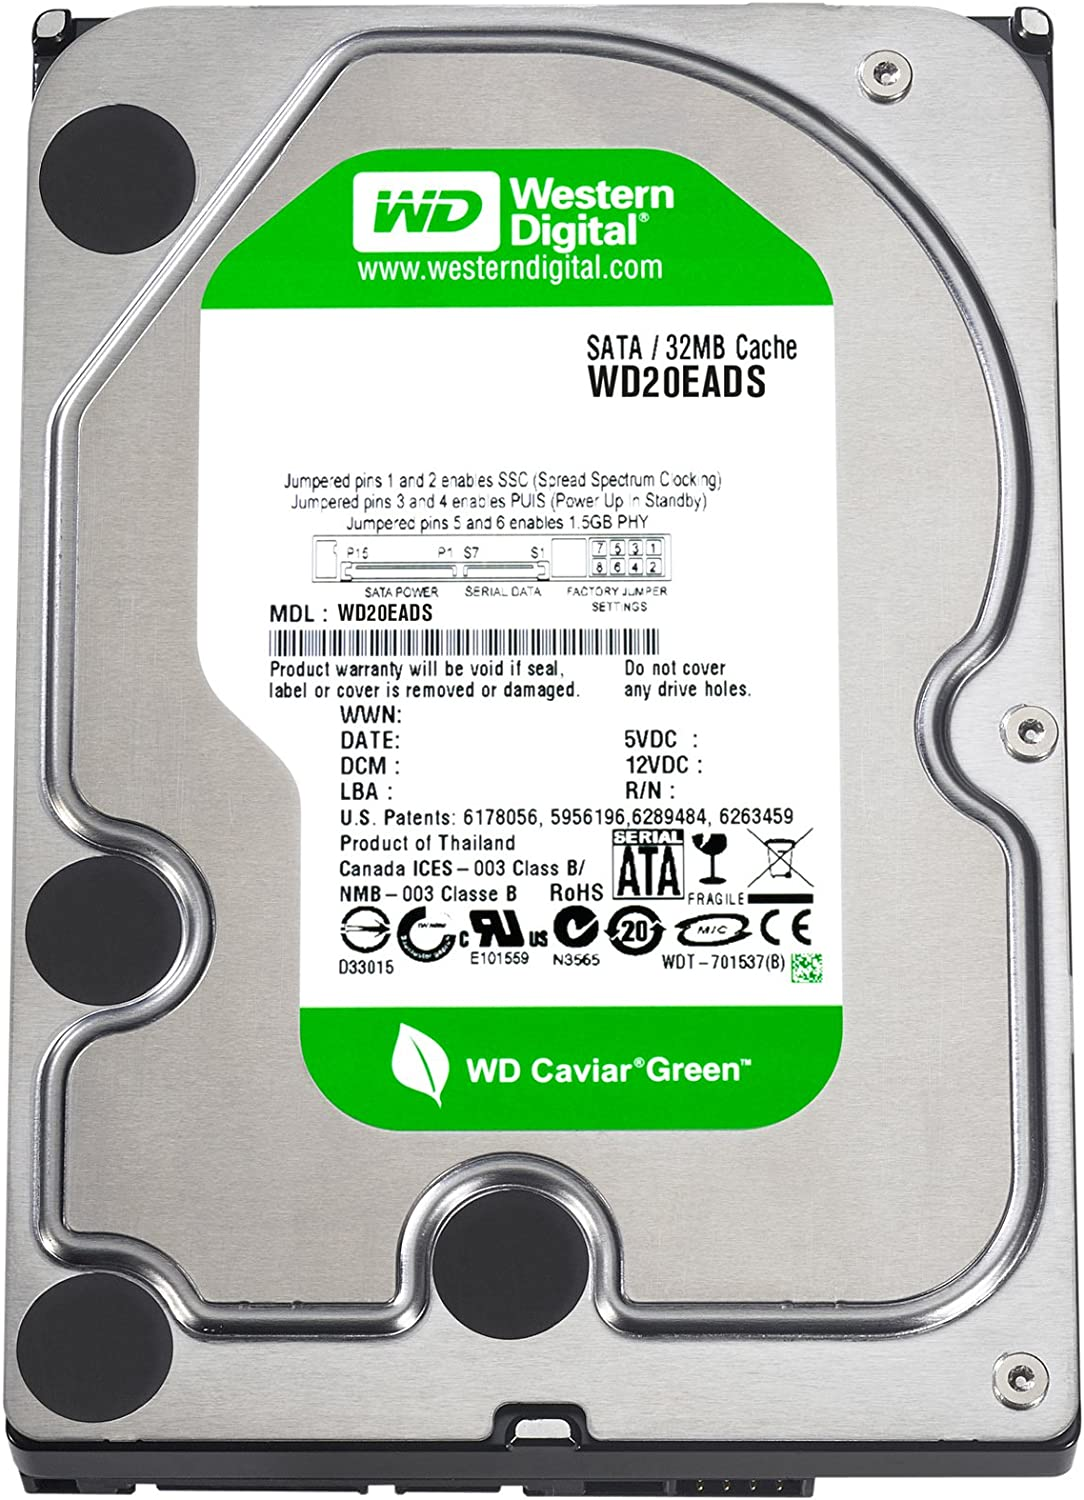 Amazon.com: Western Digital Caviar Green 2 TB SATA II 32 MB ...